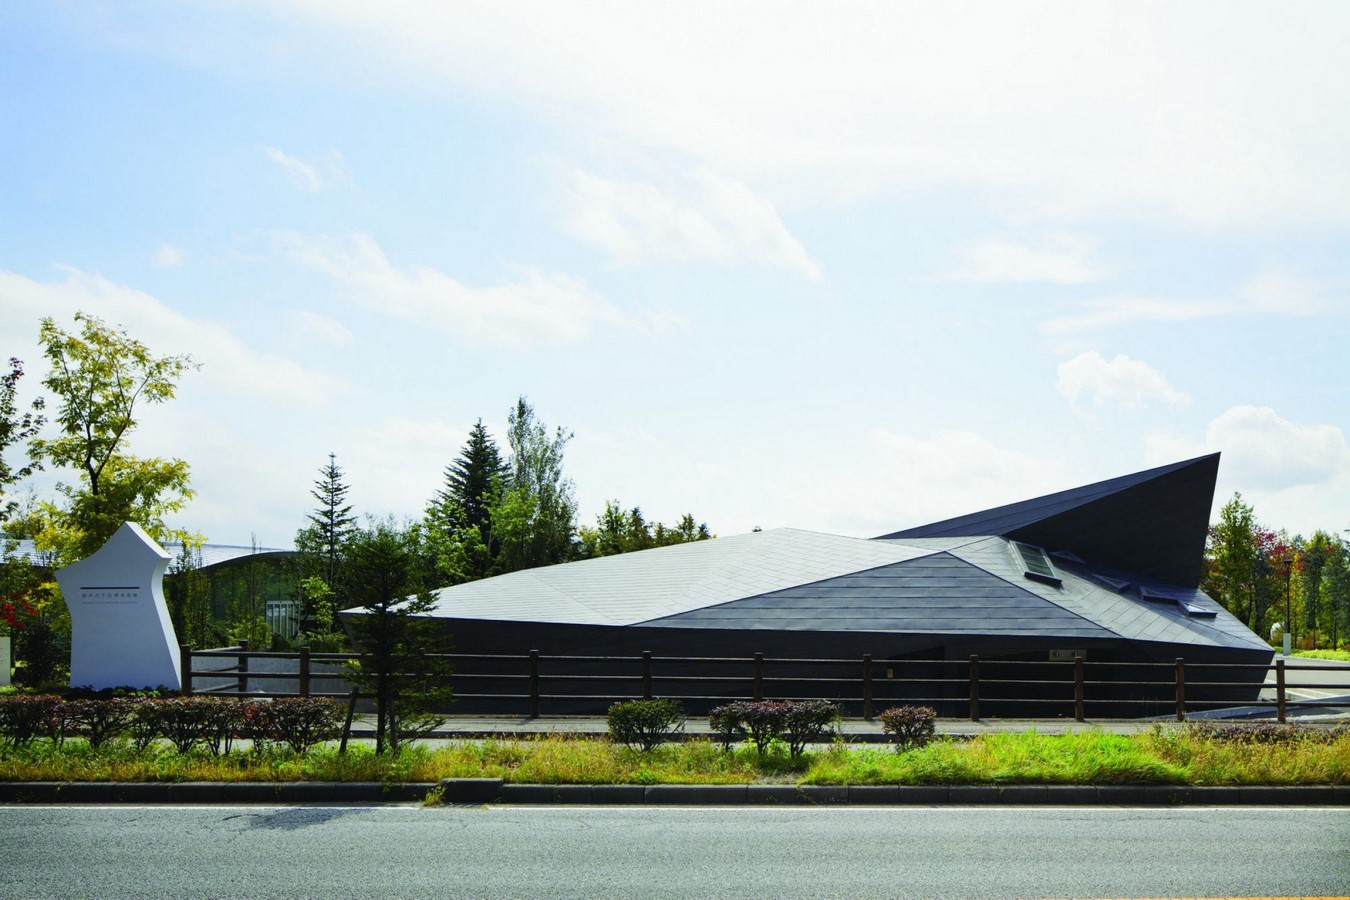 10 Examples where Origami meets Architecture - Sheet6